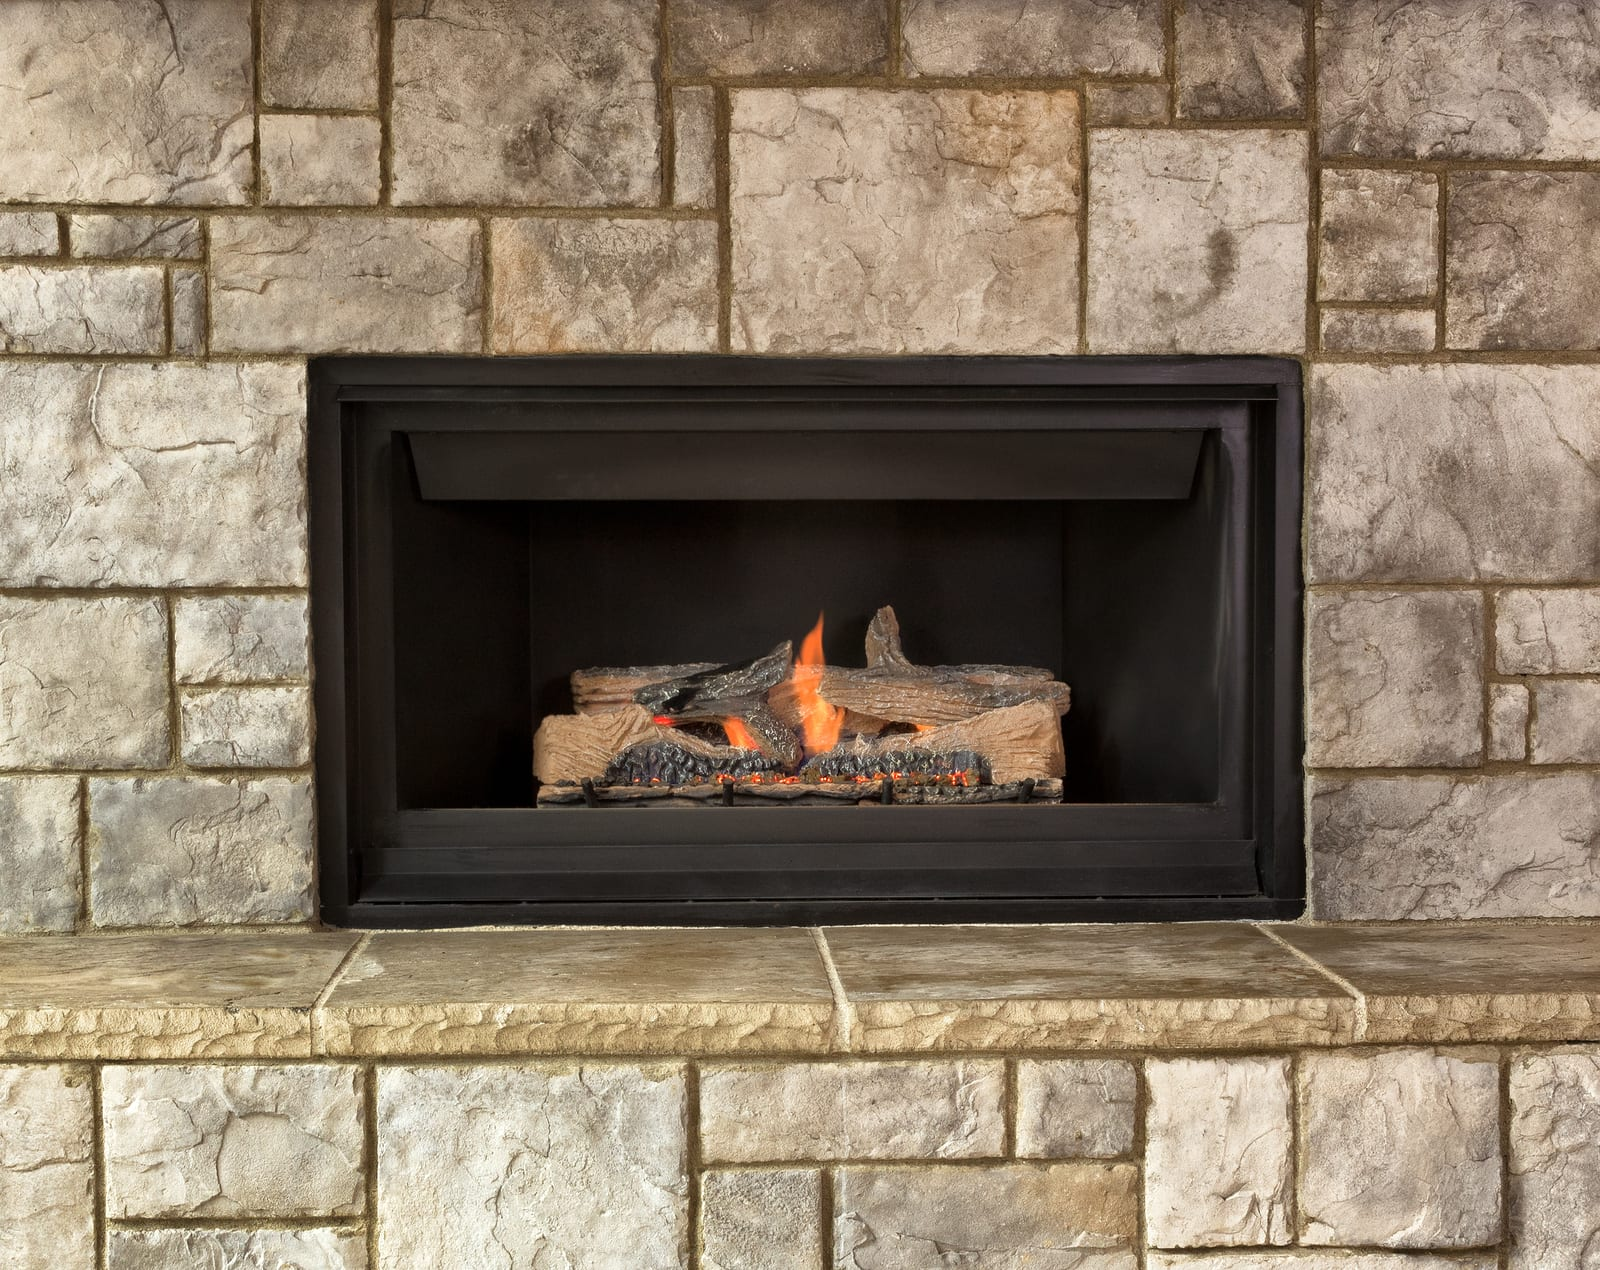 Some Benefits Of Using Gas Logs On Your Fireplace Instead